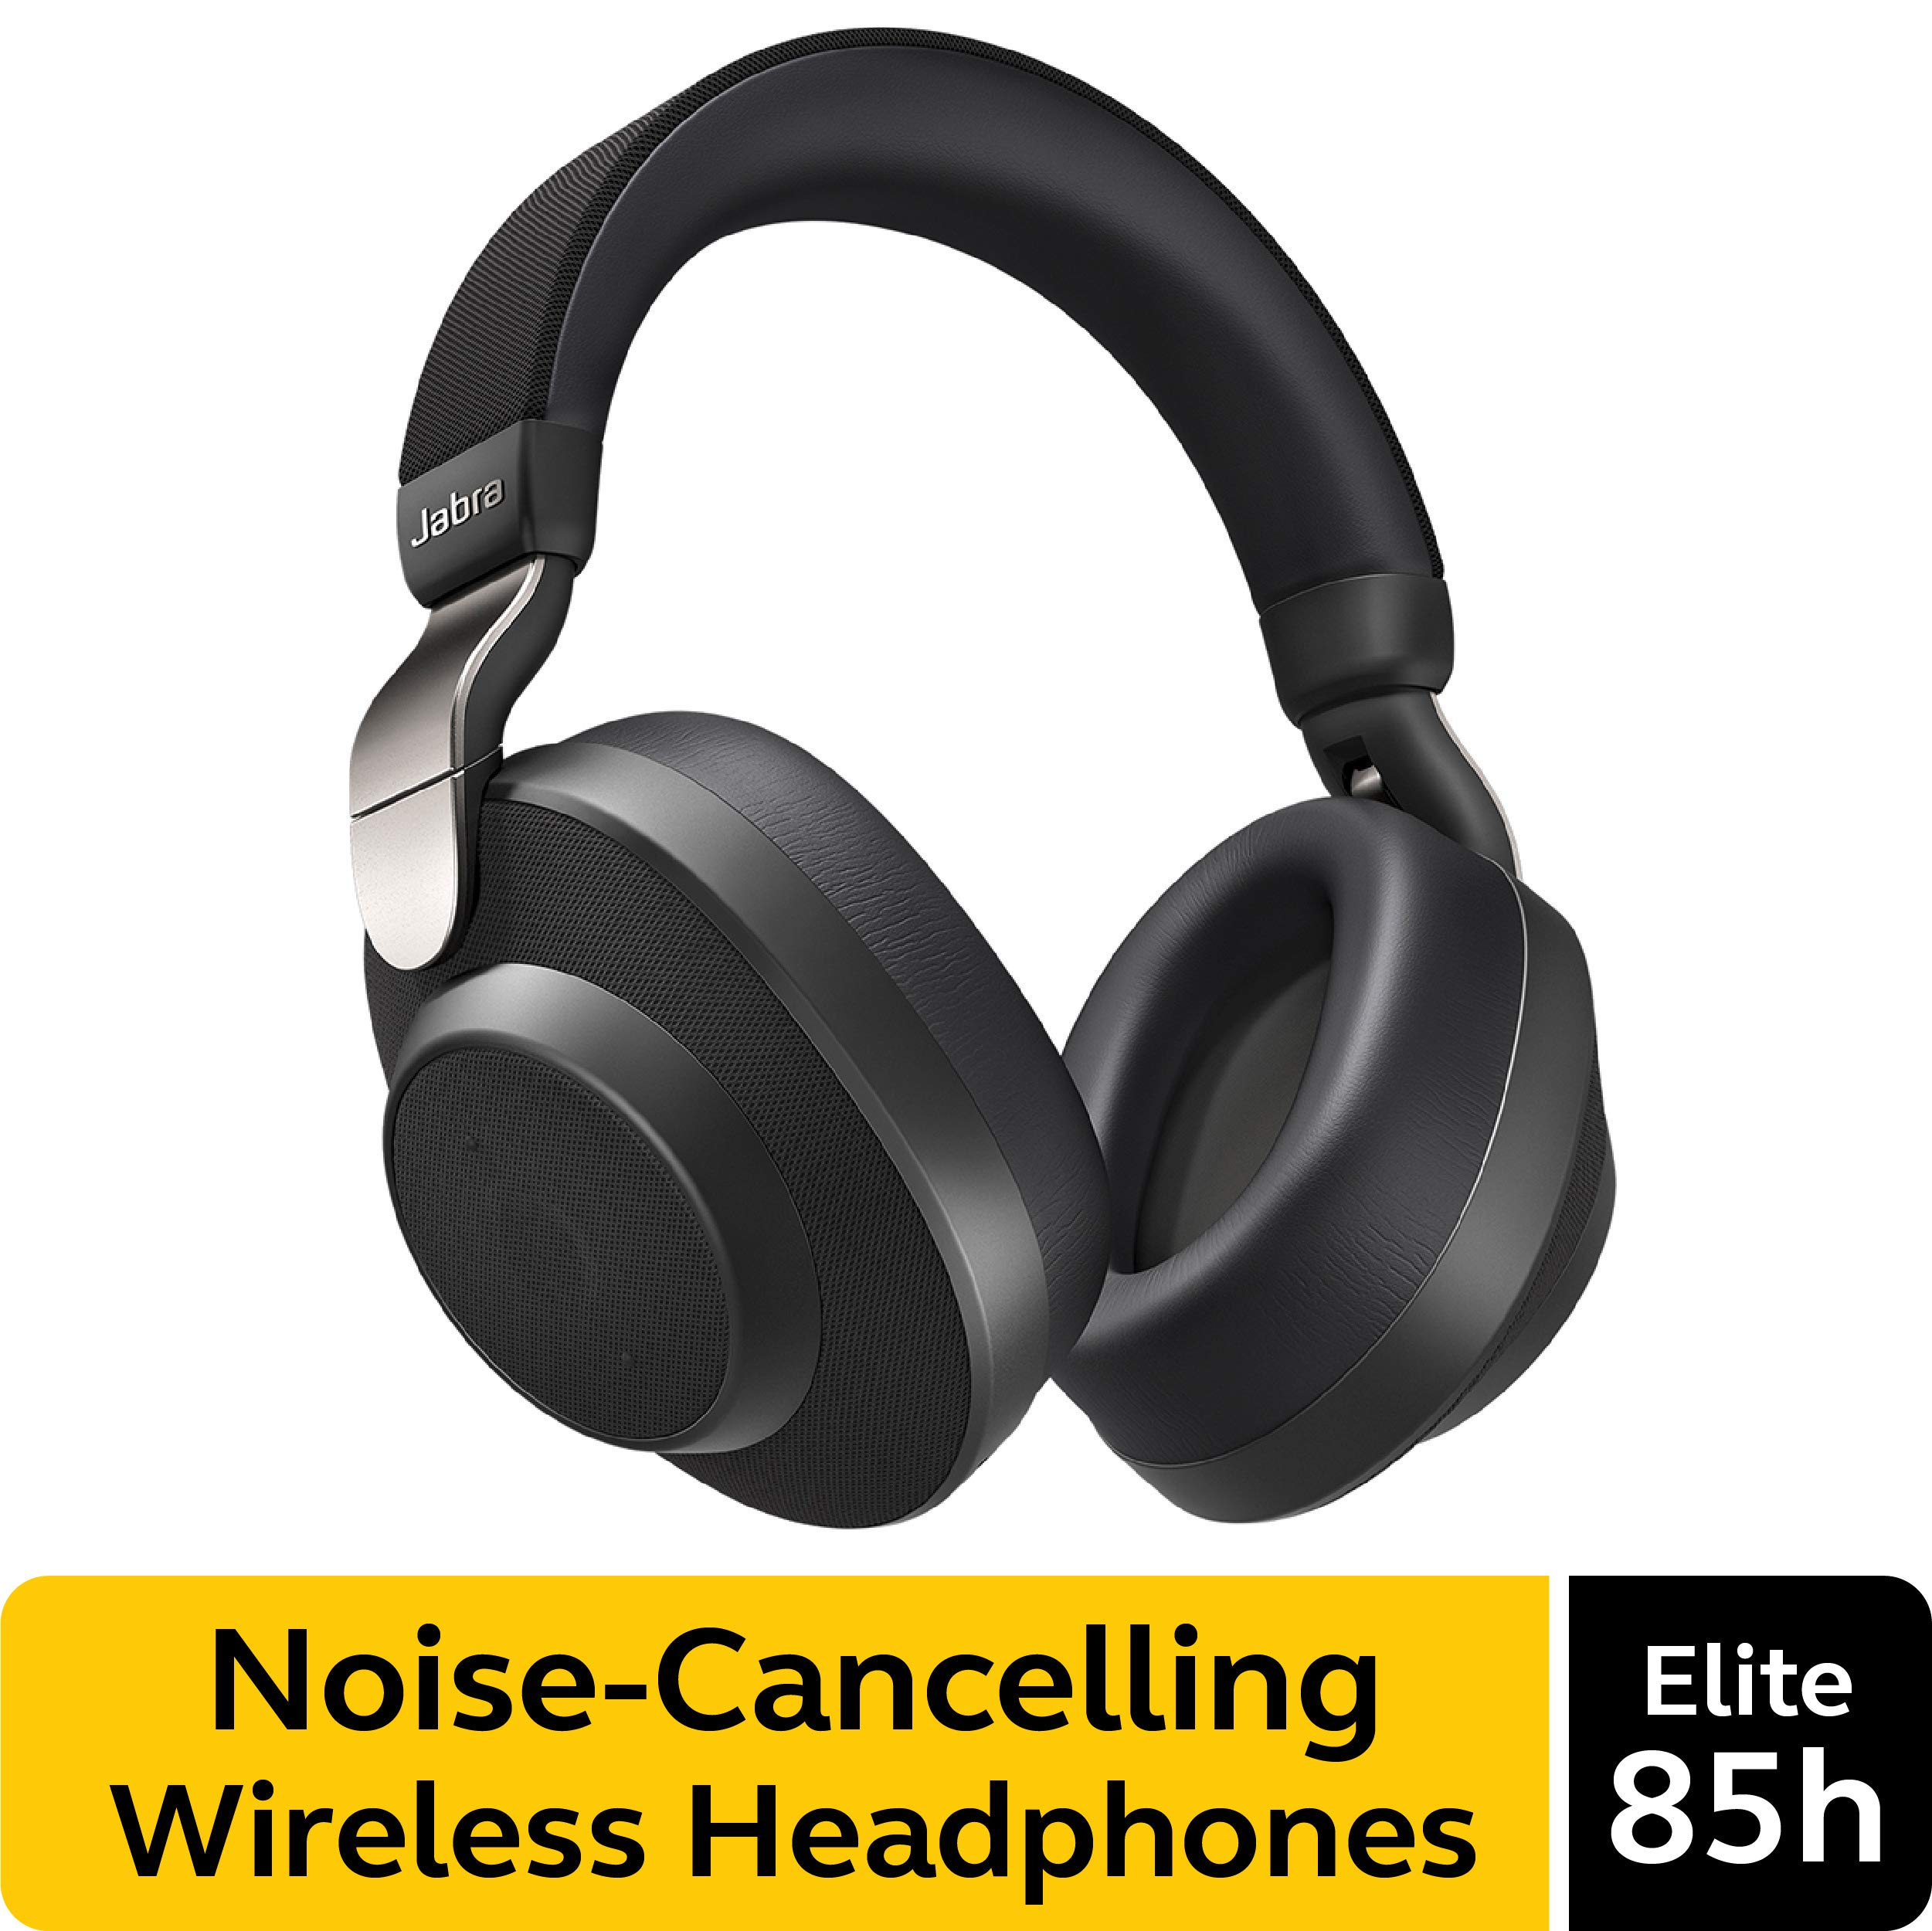 Jabra Elite 85h Wireless Noise-Canceling Headphones, Titanium Black - Over Ear Bluetooth Headphones Compatible with iPhone & Android - Built-in Microphone, Long Battery Life - Rain & Water Resistant by Jabra